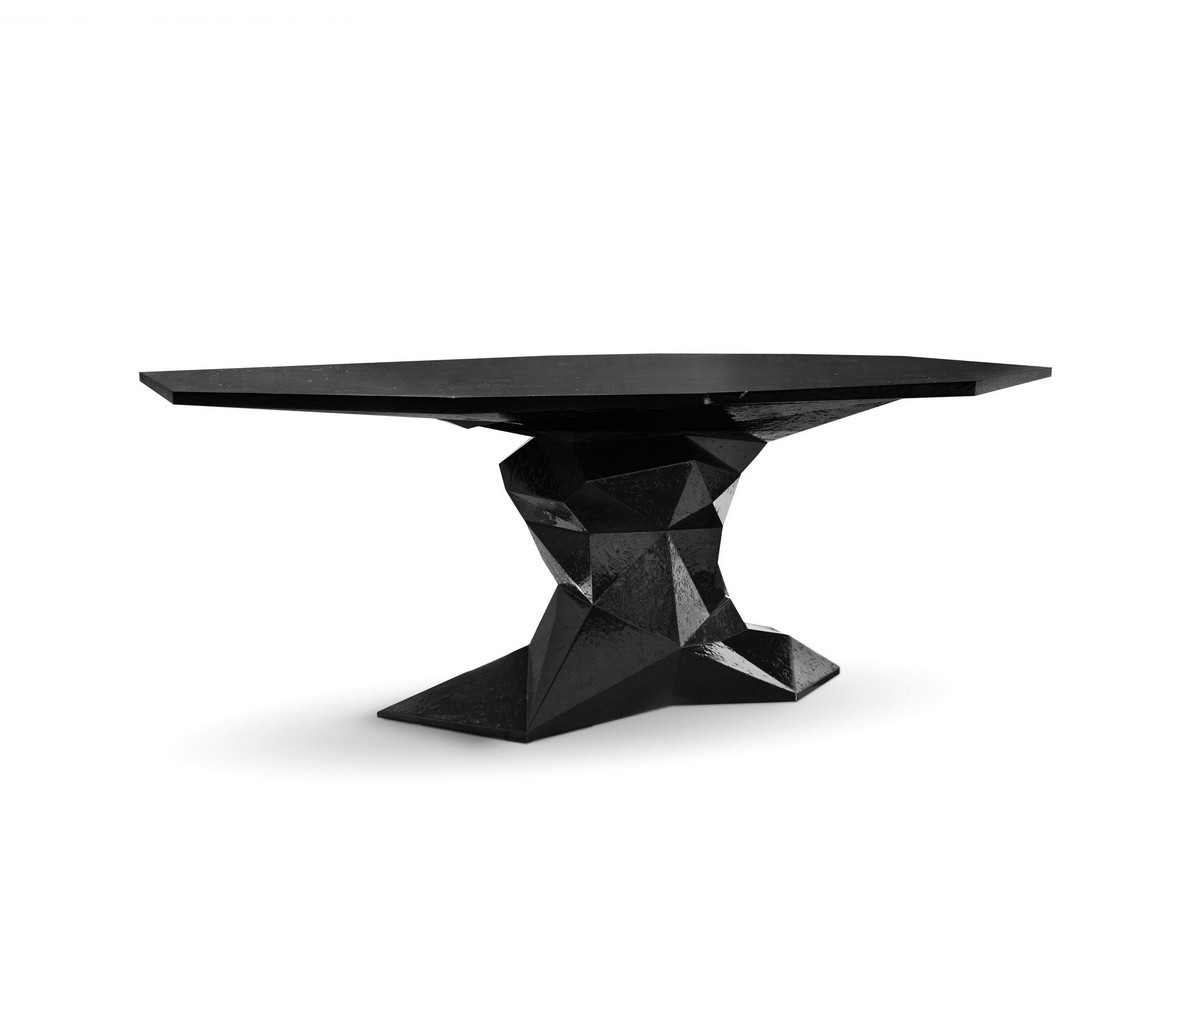 Trendy Dining Tables For 2019 (Part II) trendy dining tables Trendy Dining Tables For 2019 (Part II) bonsai